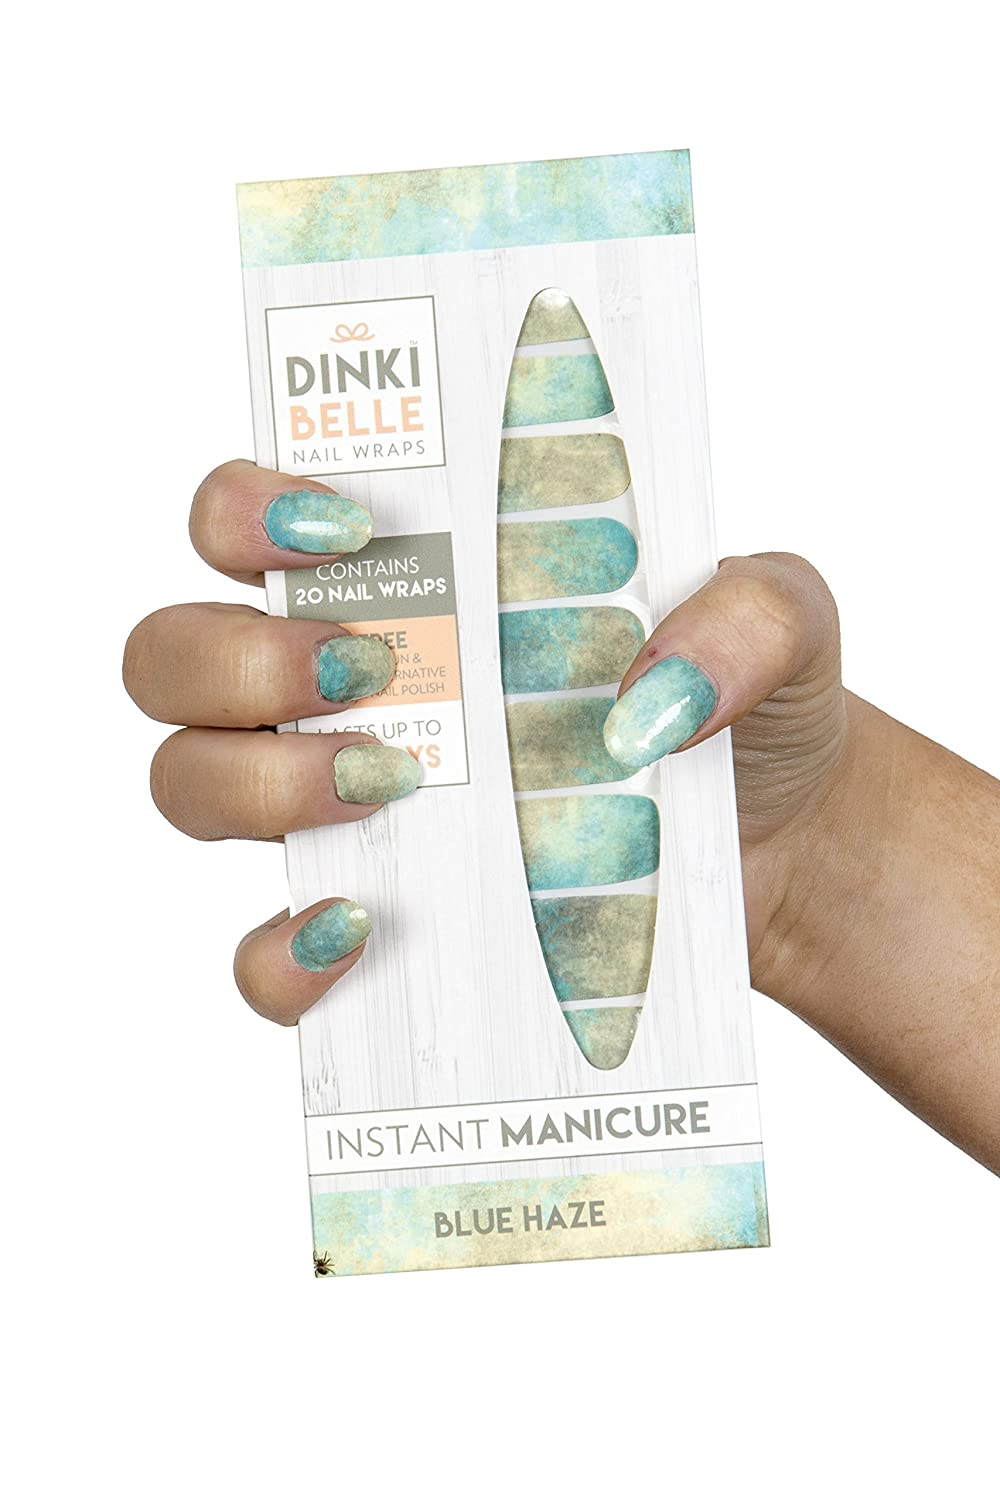 Blue Haze DinkiBelle Designer Nail Wraps in Blue Haze design includes 20 Nail Wraps - Long lasting, non toxic nailwraps in blue and green ombre design. Perfect gift or Stocking Filler